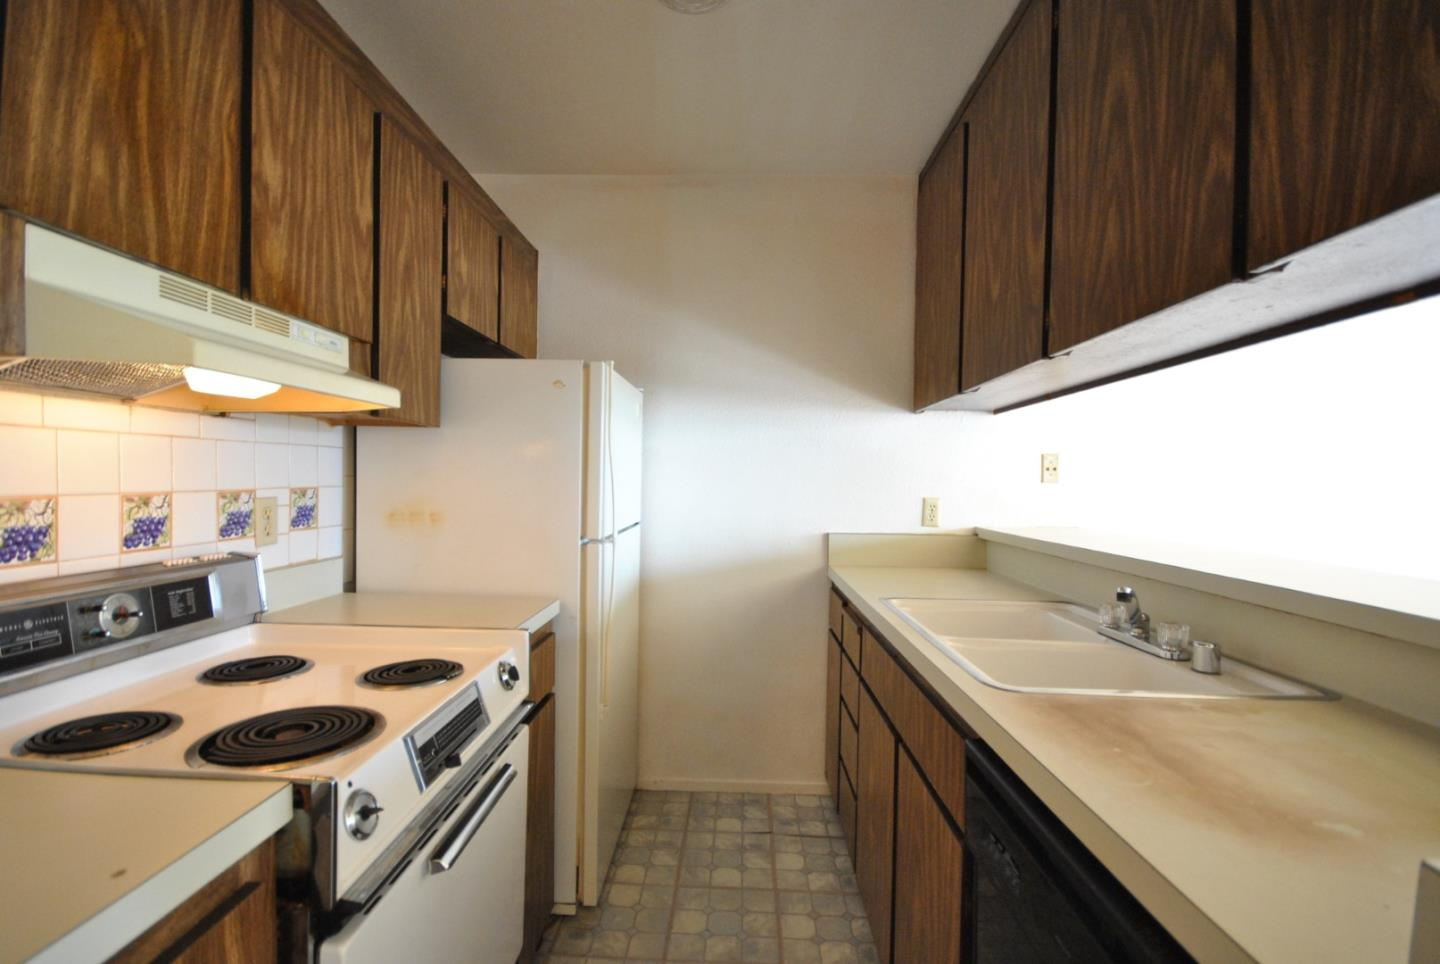 thumbnail image for 395 Imperial Way, Daly City CA, 94015